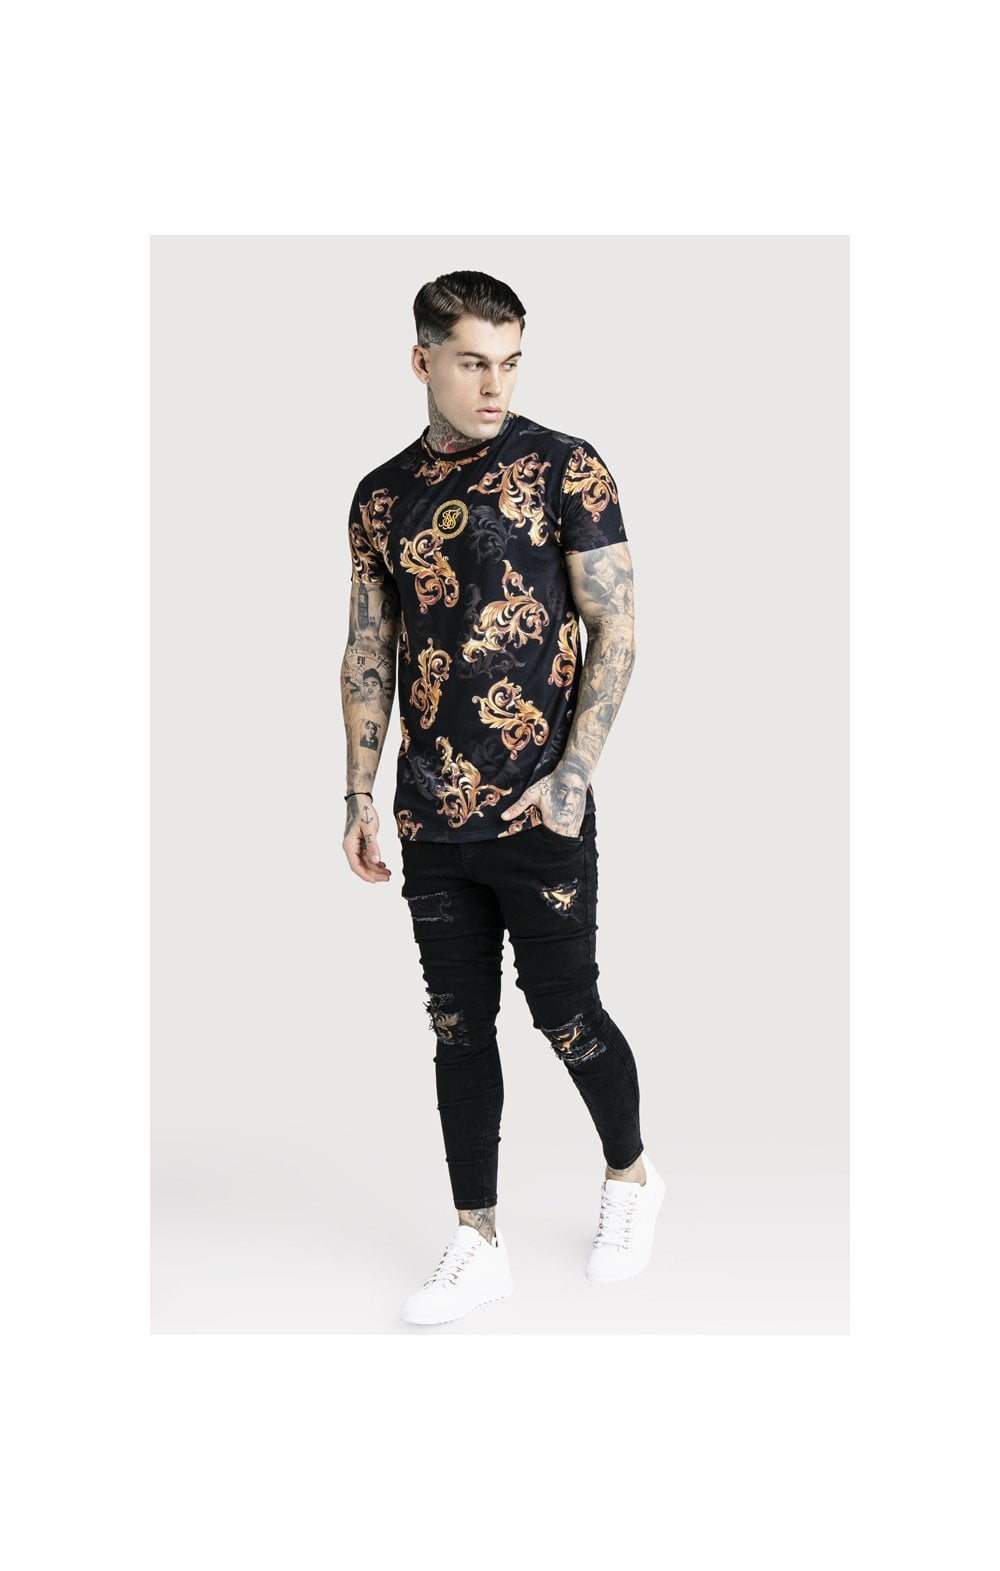 SikSilk x Dani Alves Reverse Collar Tee - Black (4)